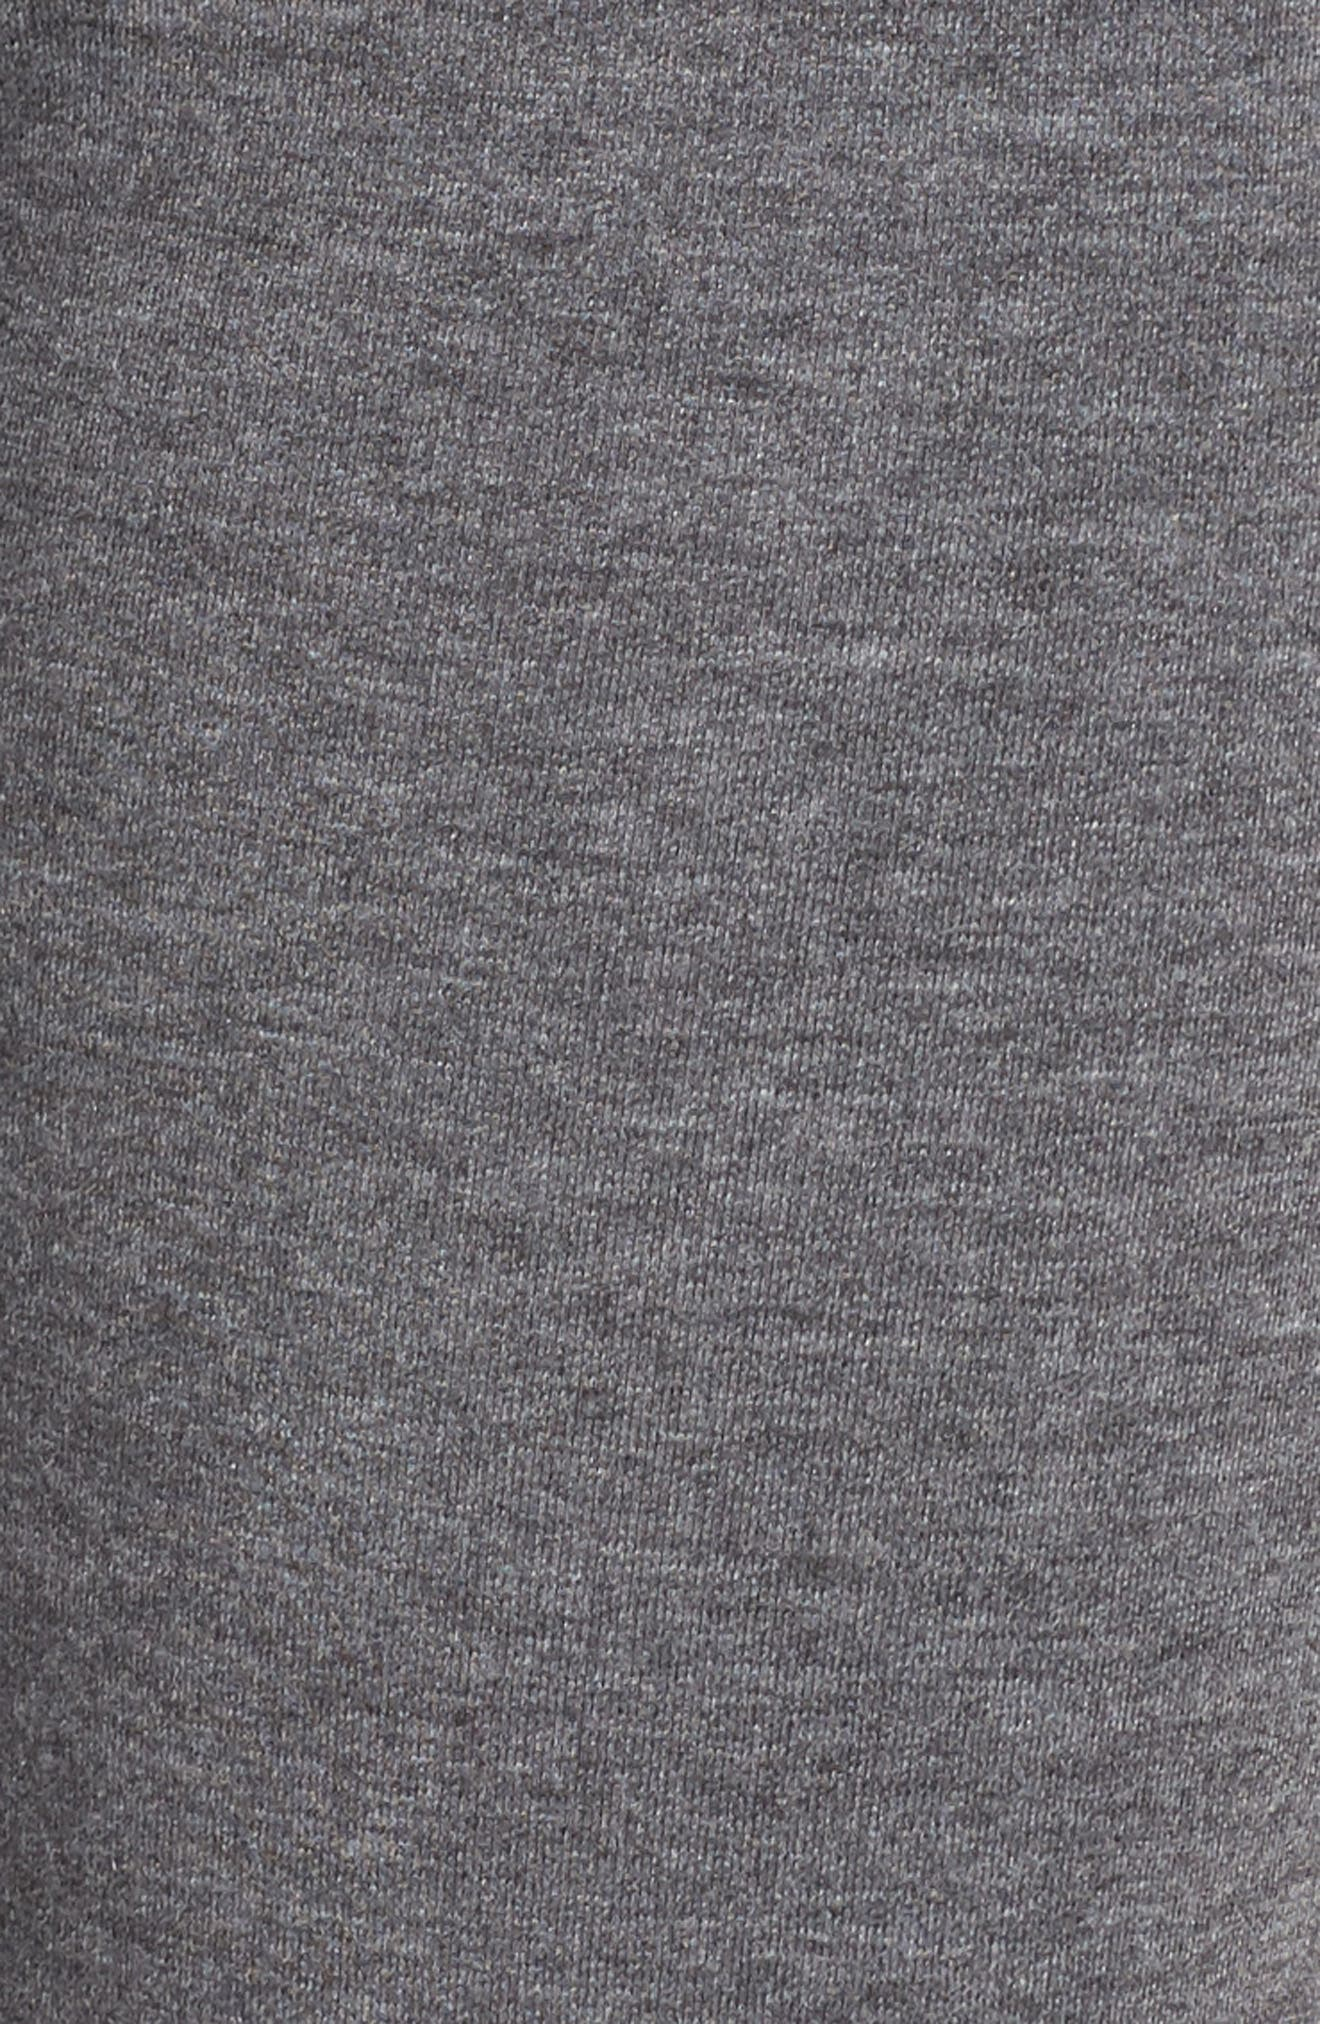 Revive Pants,                             Alternate thumbnail 5, color,                             GREY DARK HEATHER